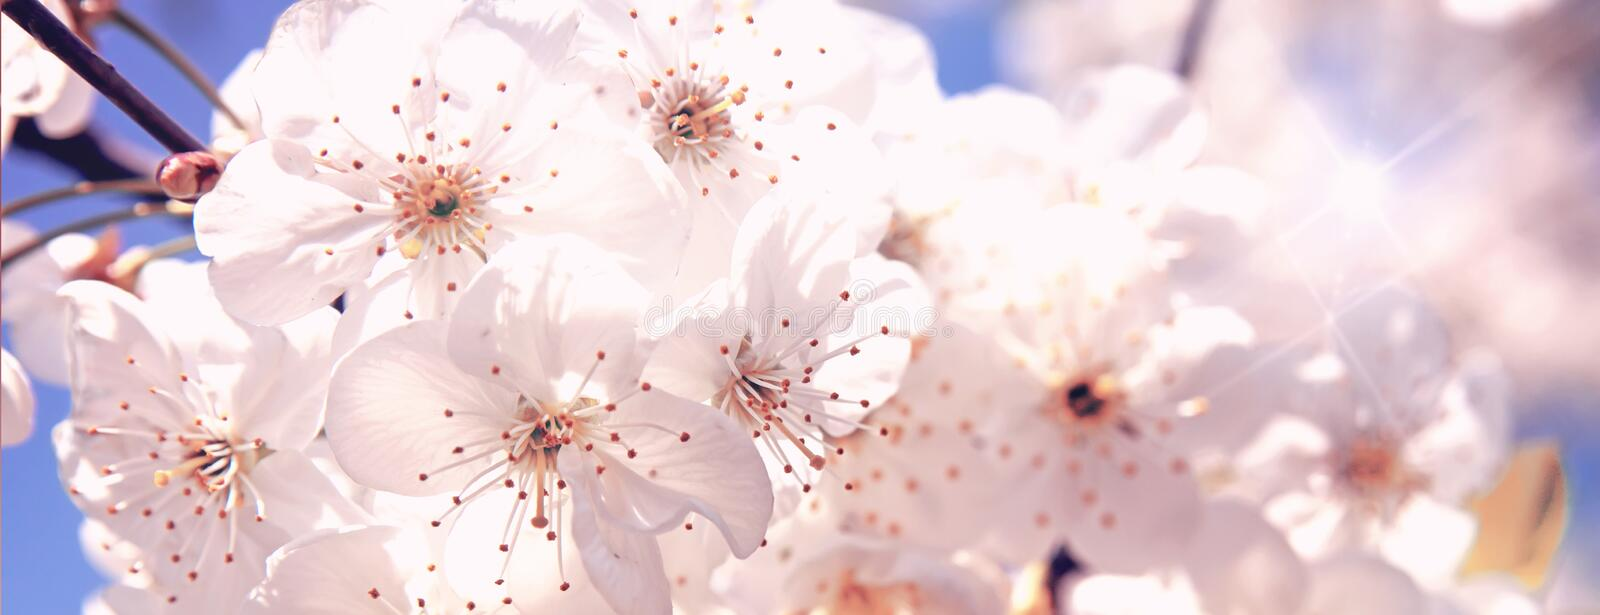 Blossoming of the cherry tree in spring time with white beautiful flowers. Macro image with copy space. Natural seasonal. Background. Selective focus. Banner stock photography